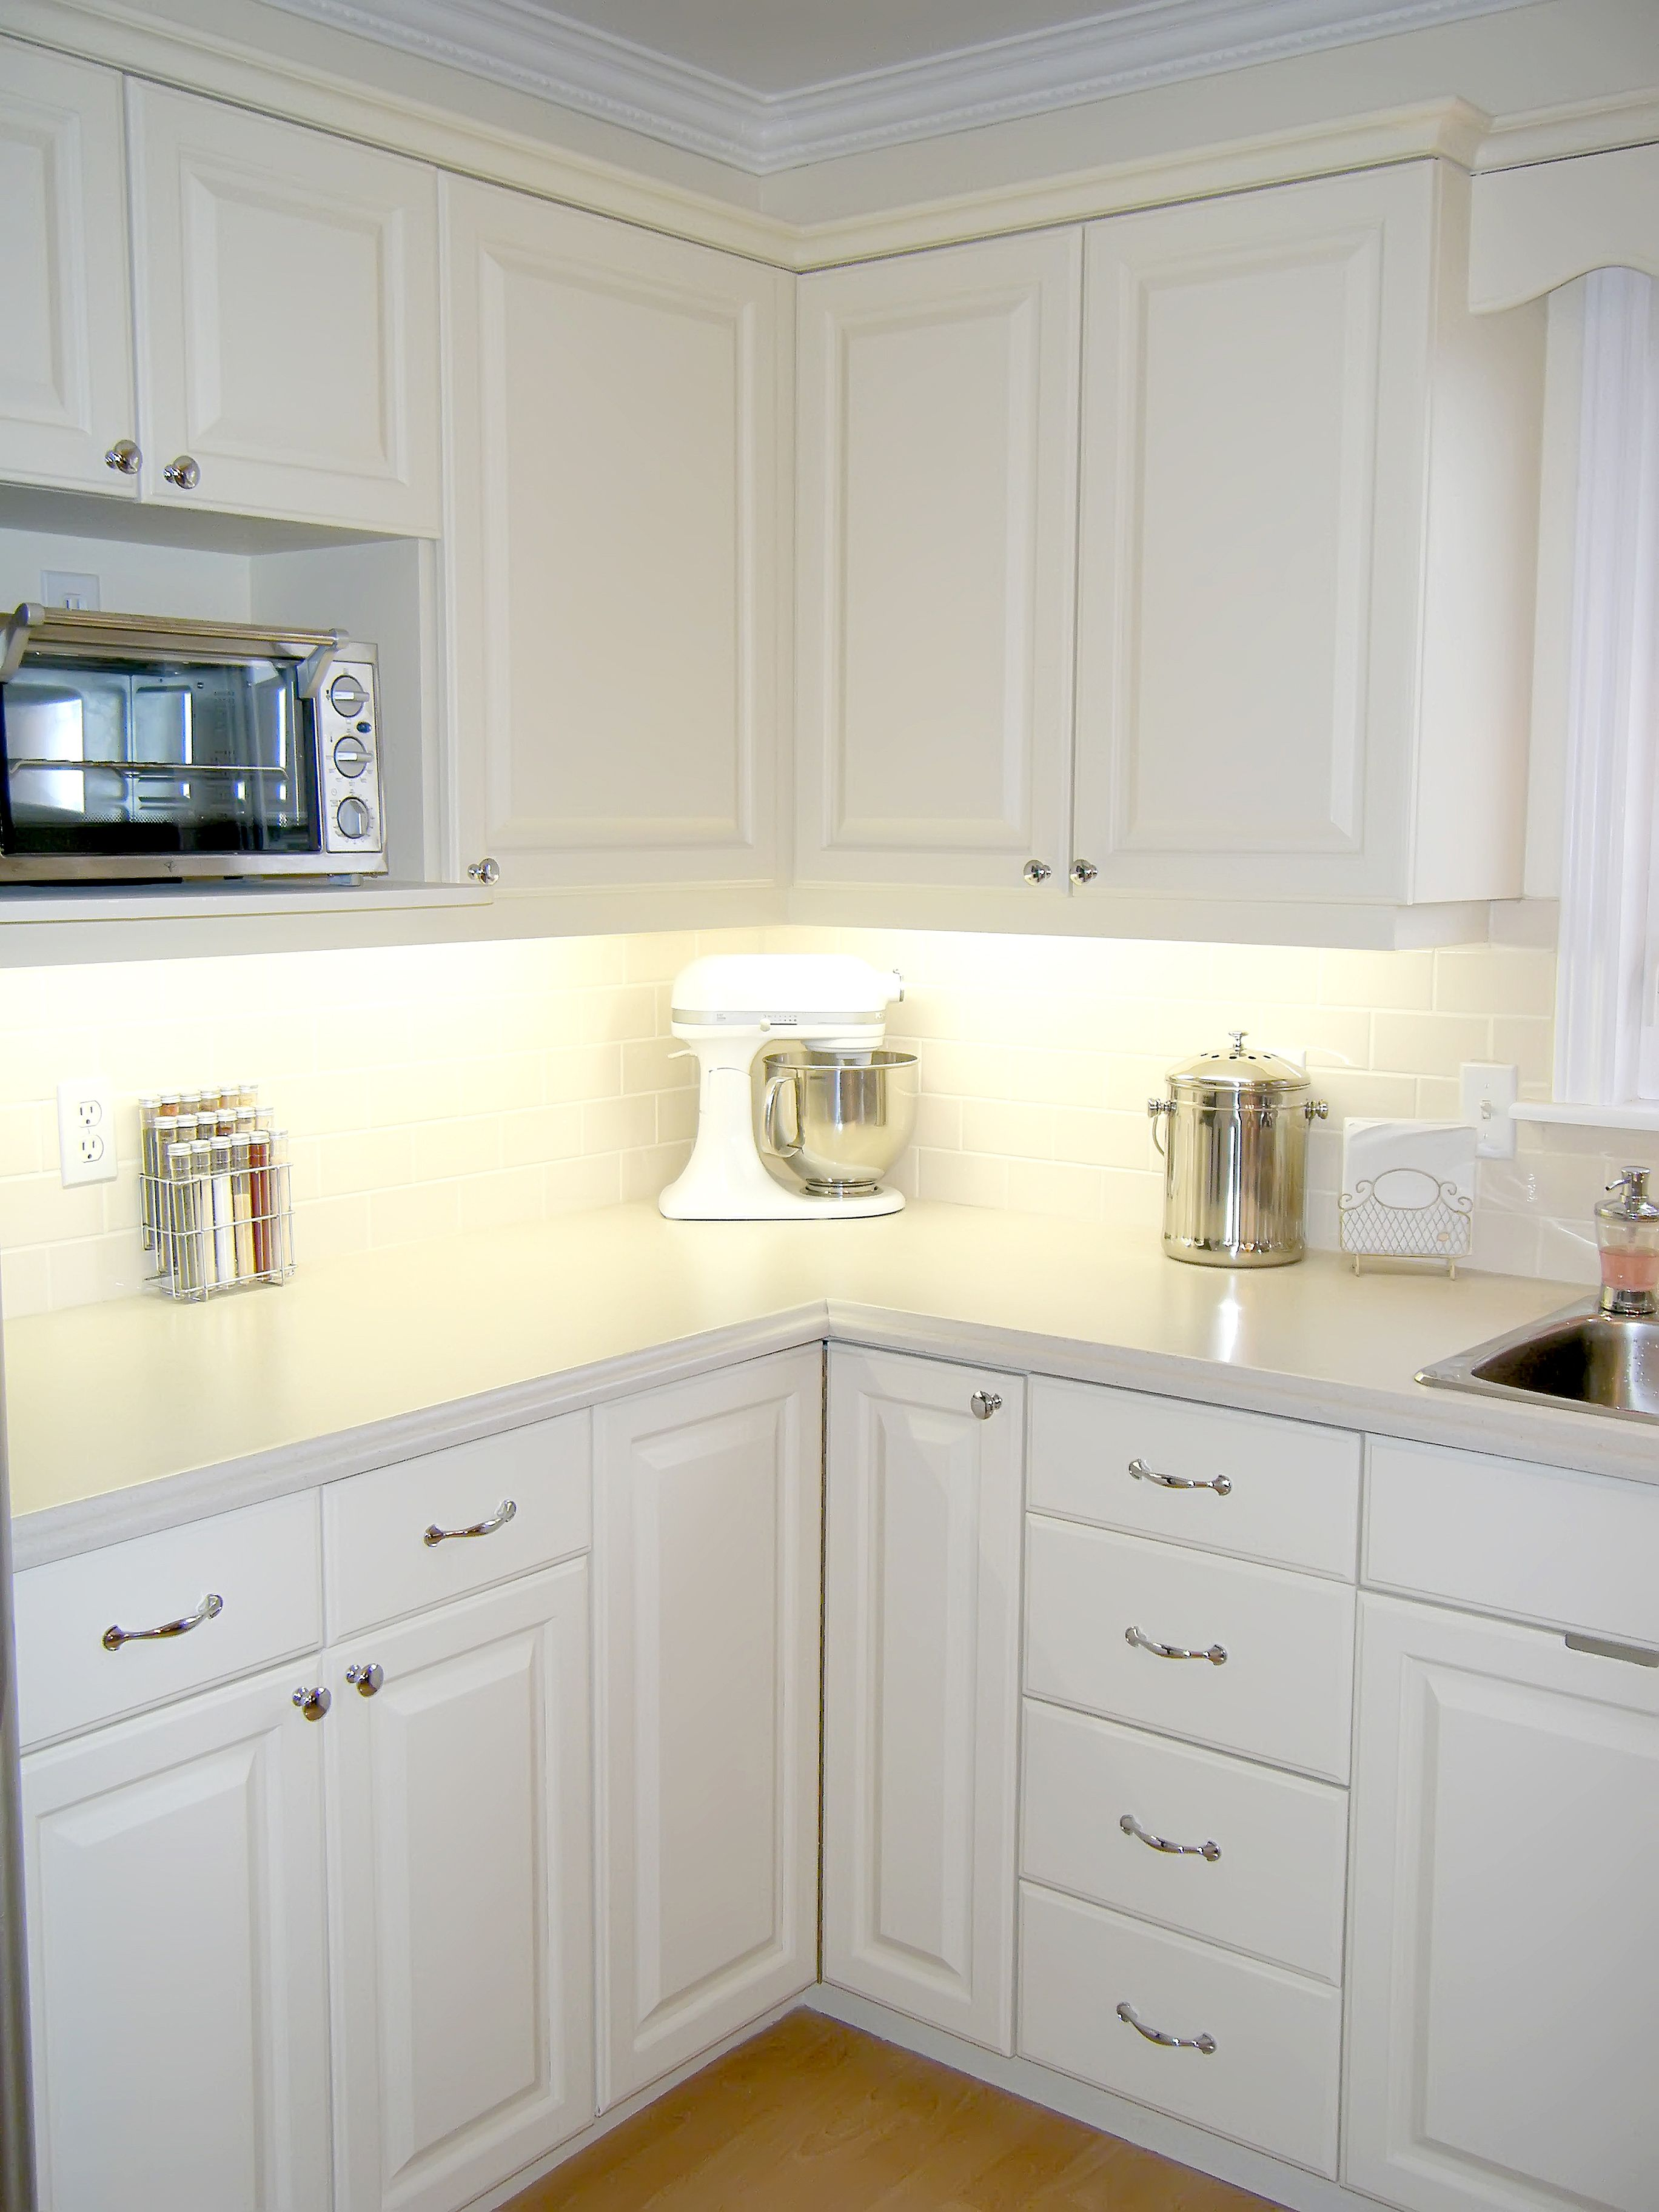 Painting Kitchen Cabinets | Crafts & DIY | Pinterest | Painting ...